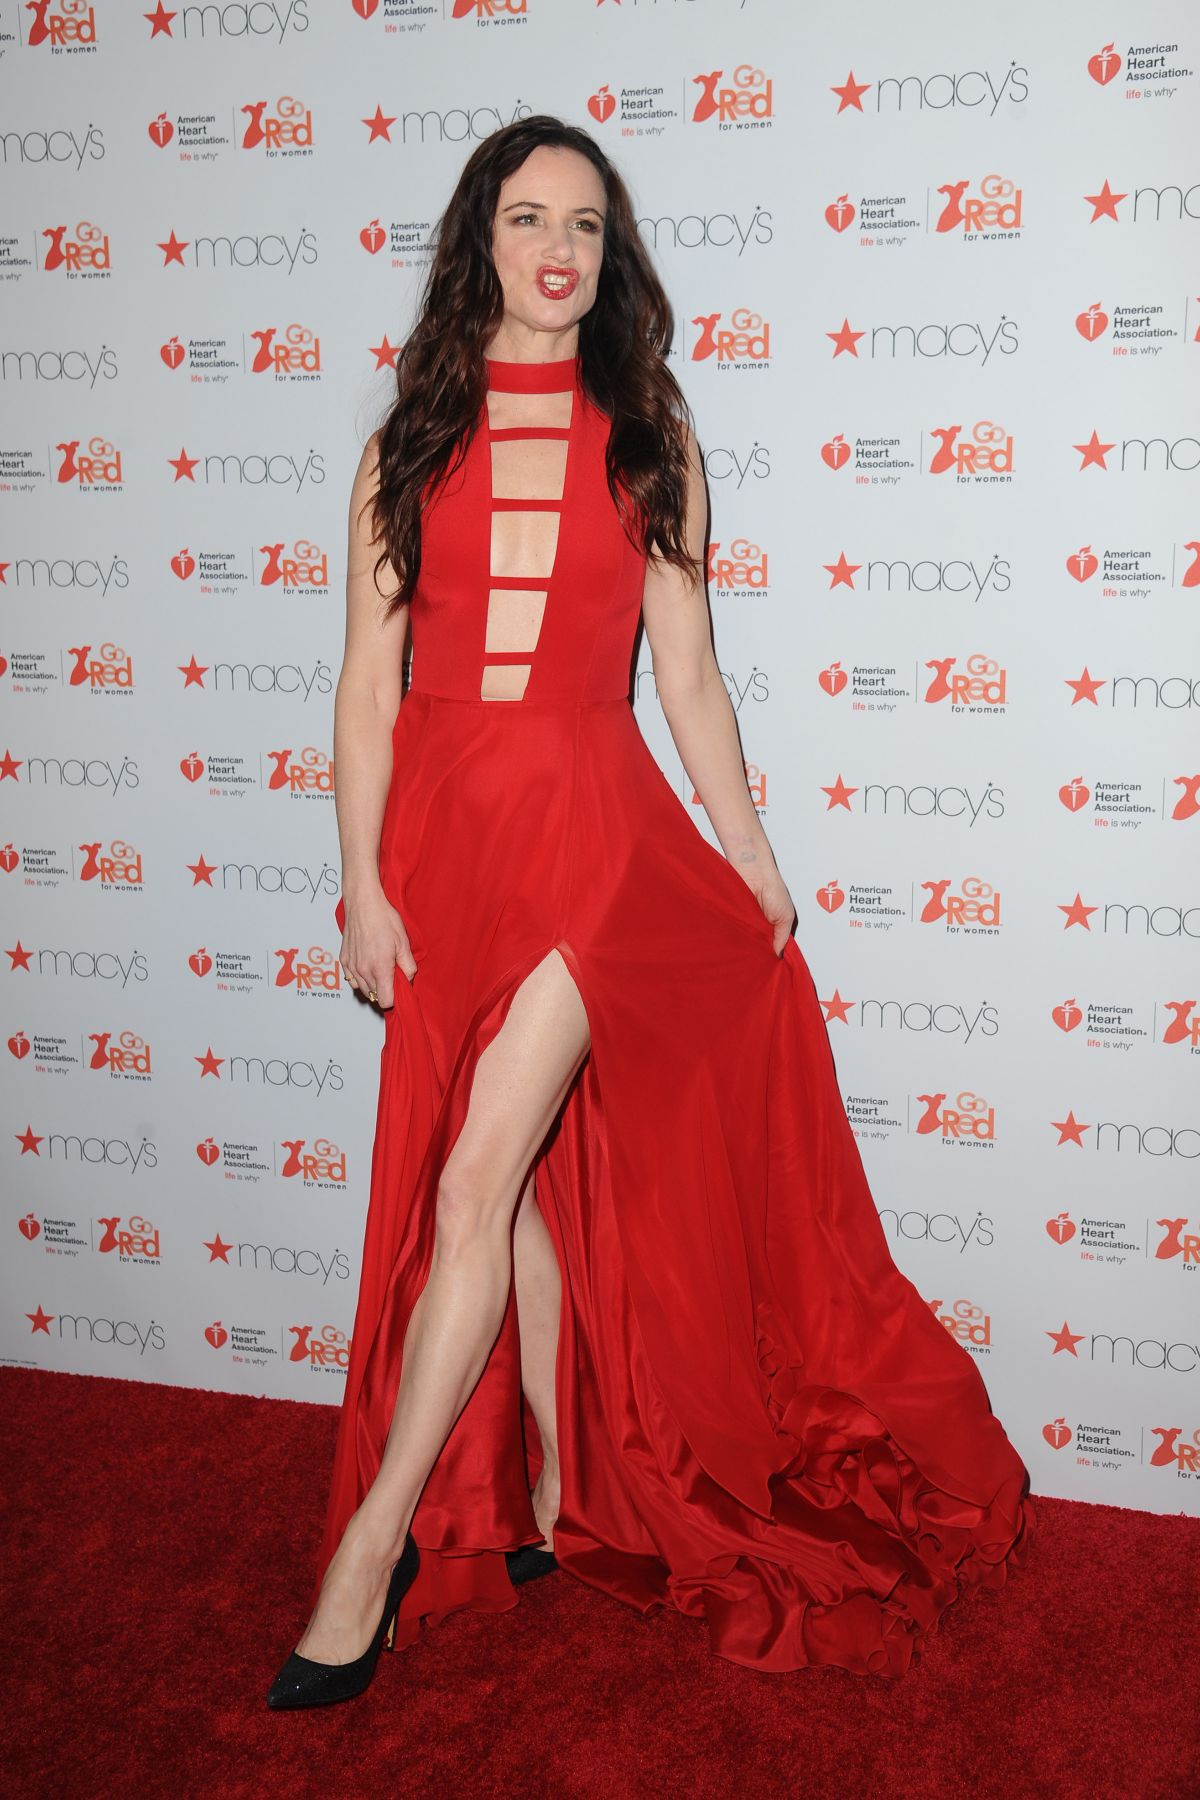 Amazing  Women Red Dress Collection 2017 In New York 02092017  HawtCelebs